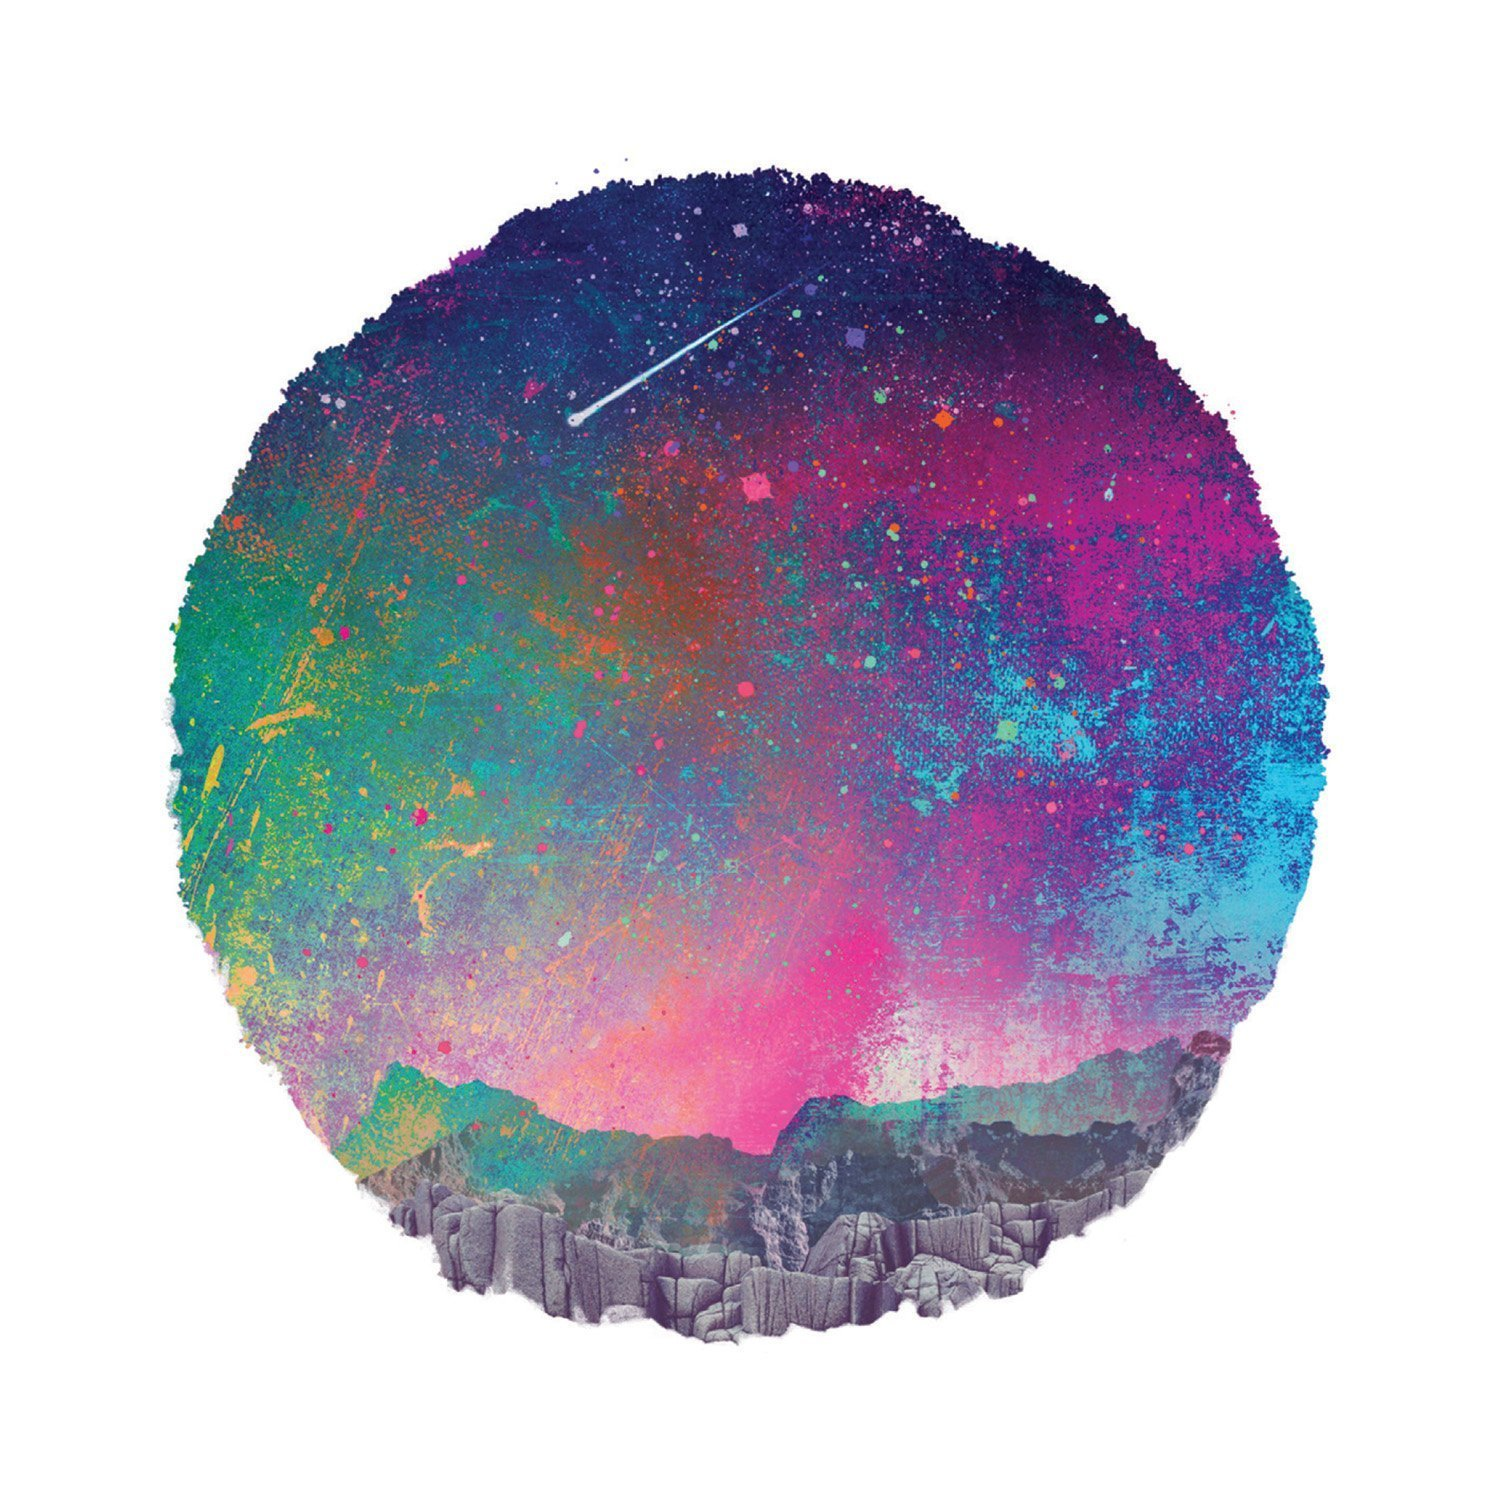 The Universe Smiles Upon You by Khruangbin image